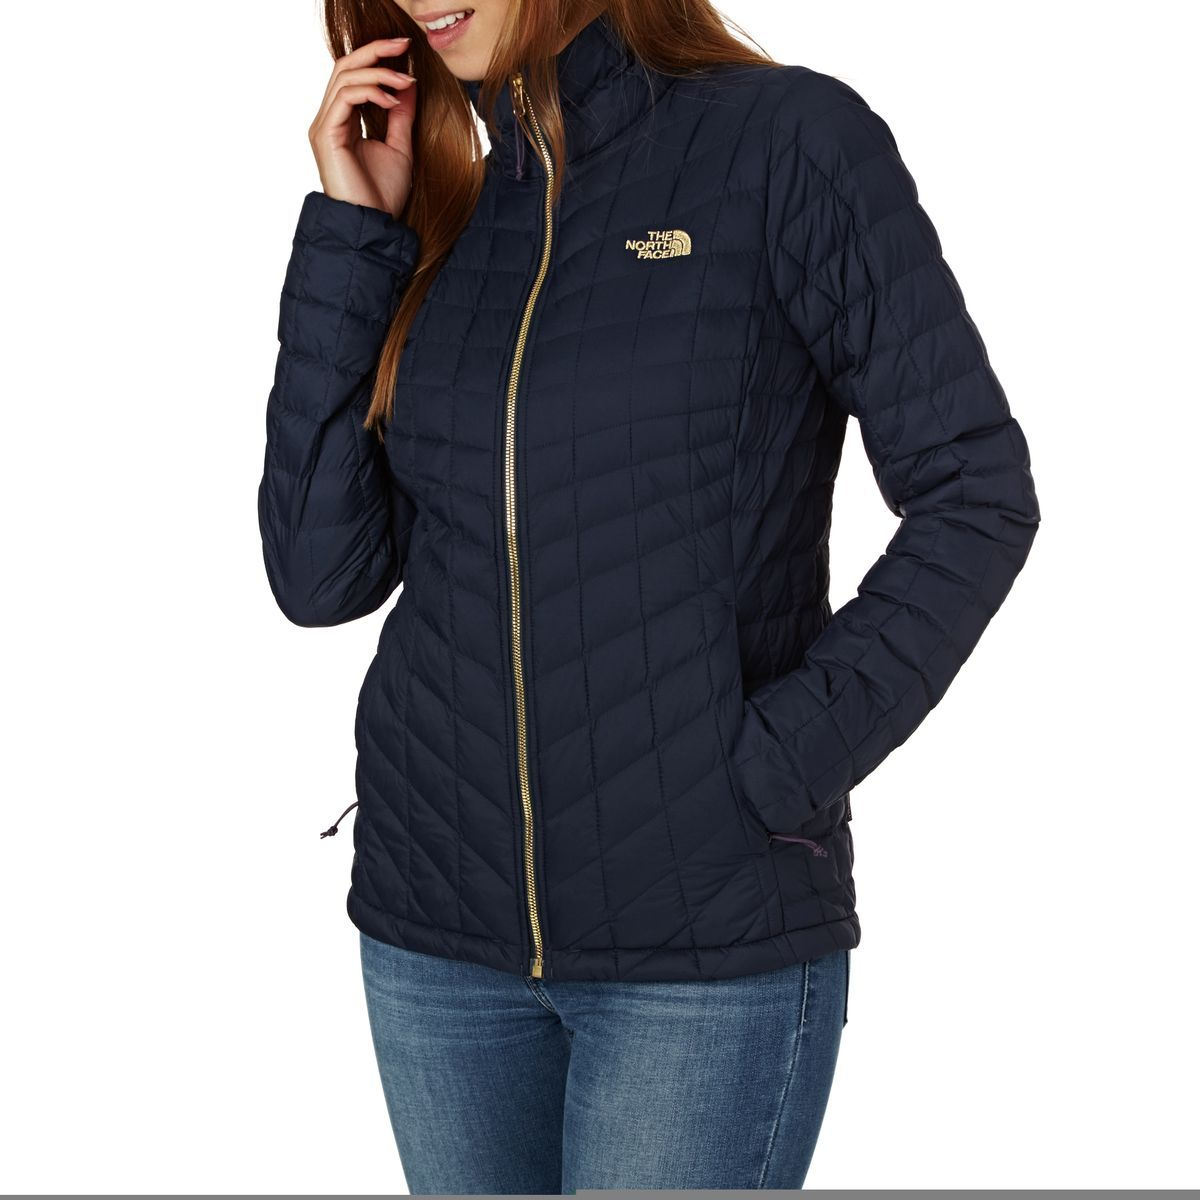 The North Face Thermoball Full Zip Jacket Urban Navy North Face Outfits Jackets For Women North Face Jacket [ 1200 x 1200 Pixel ]